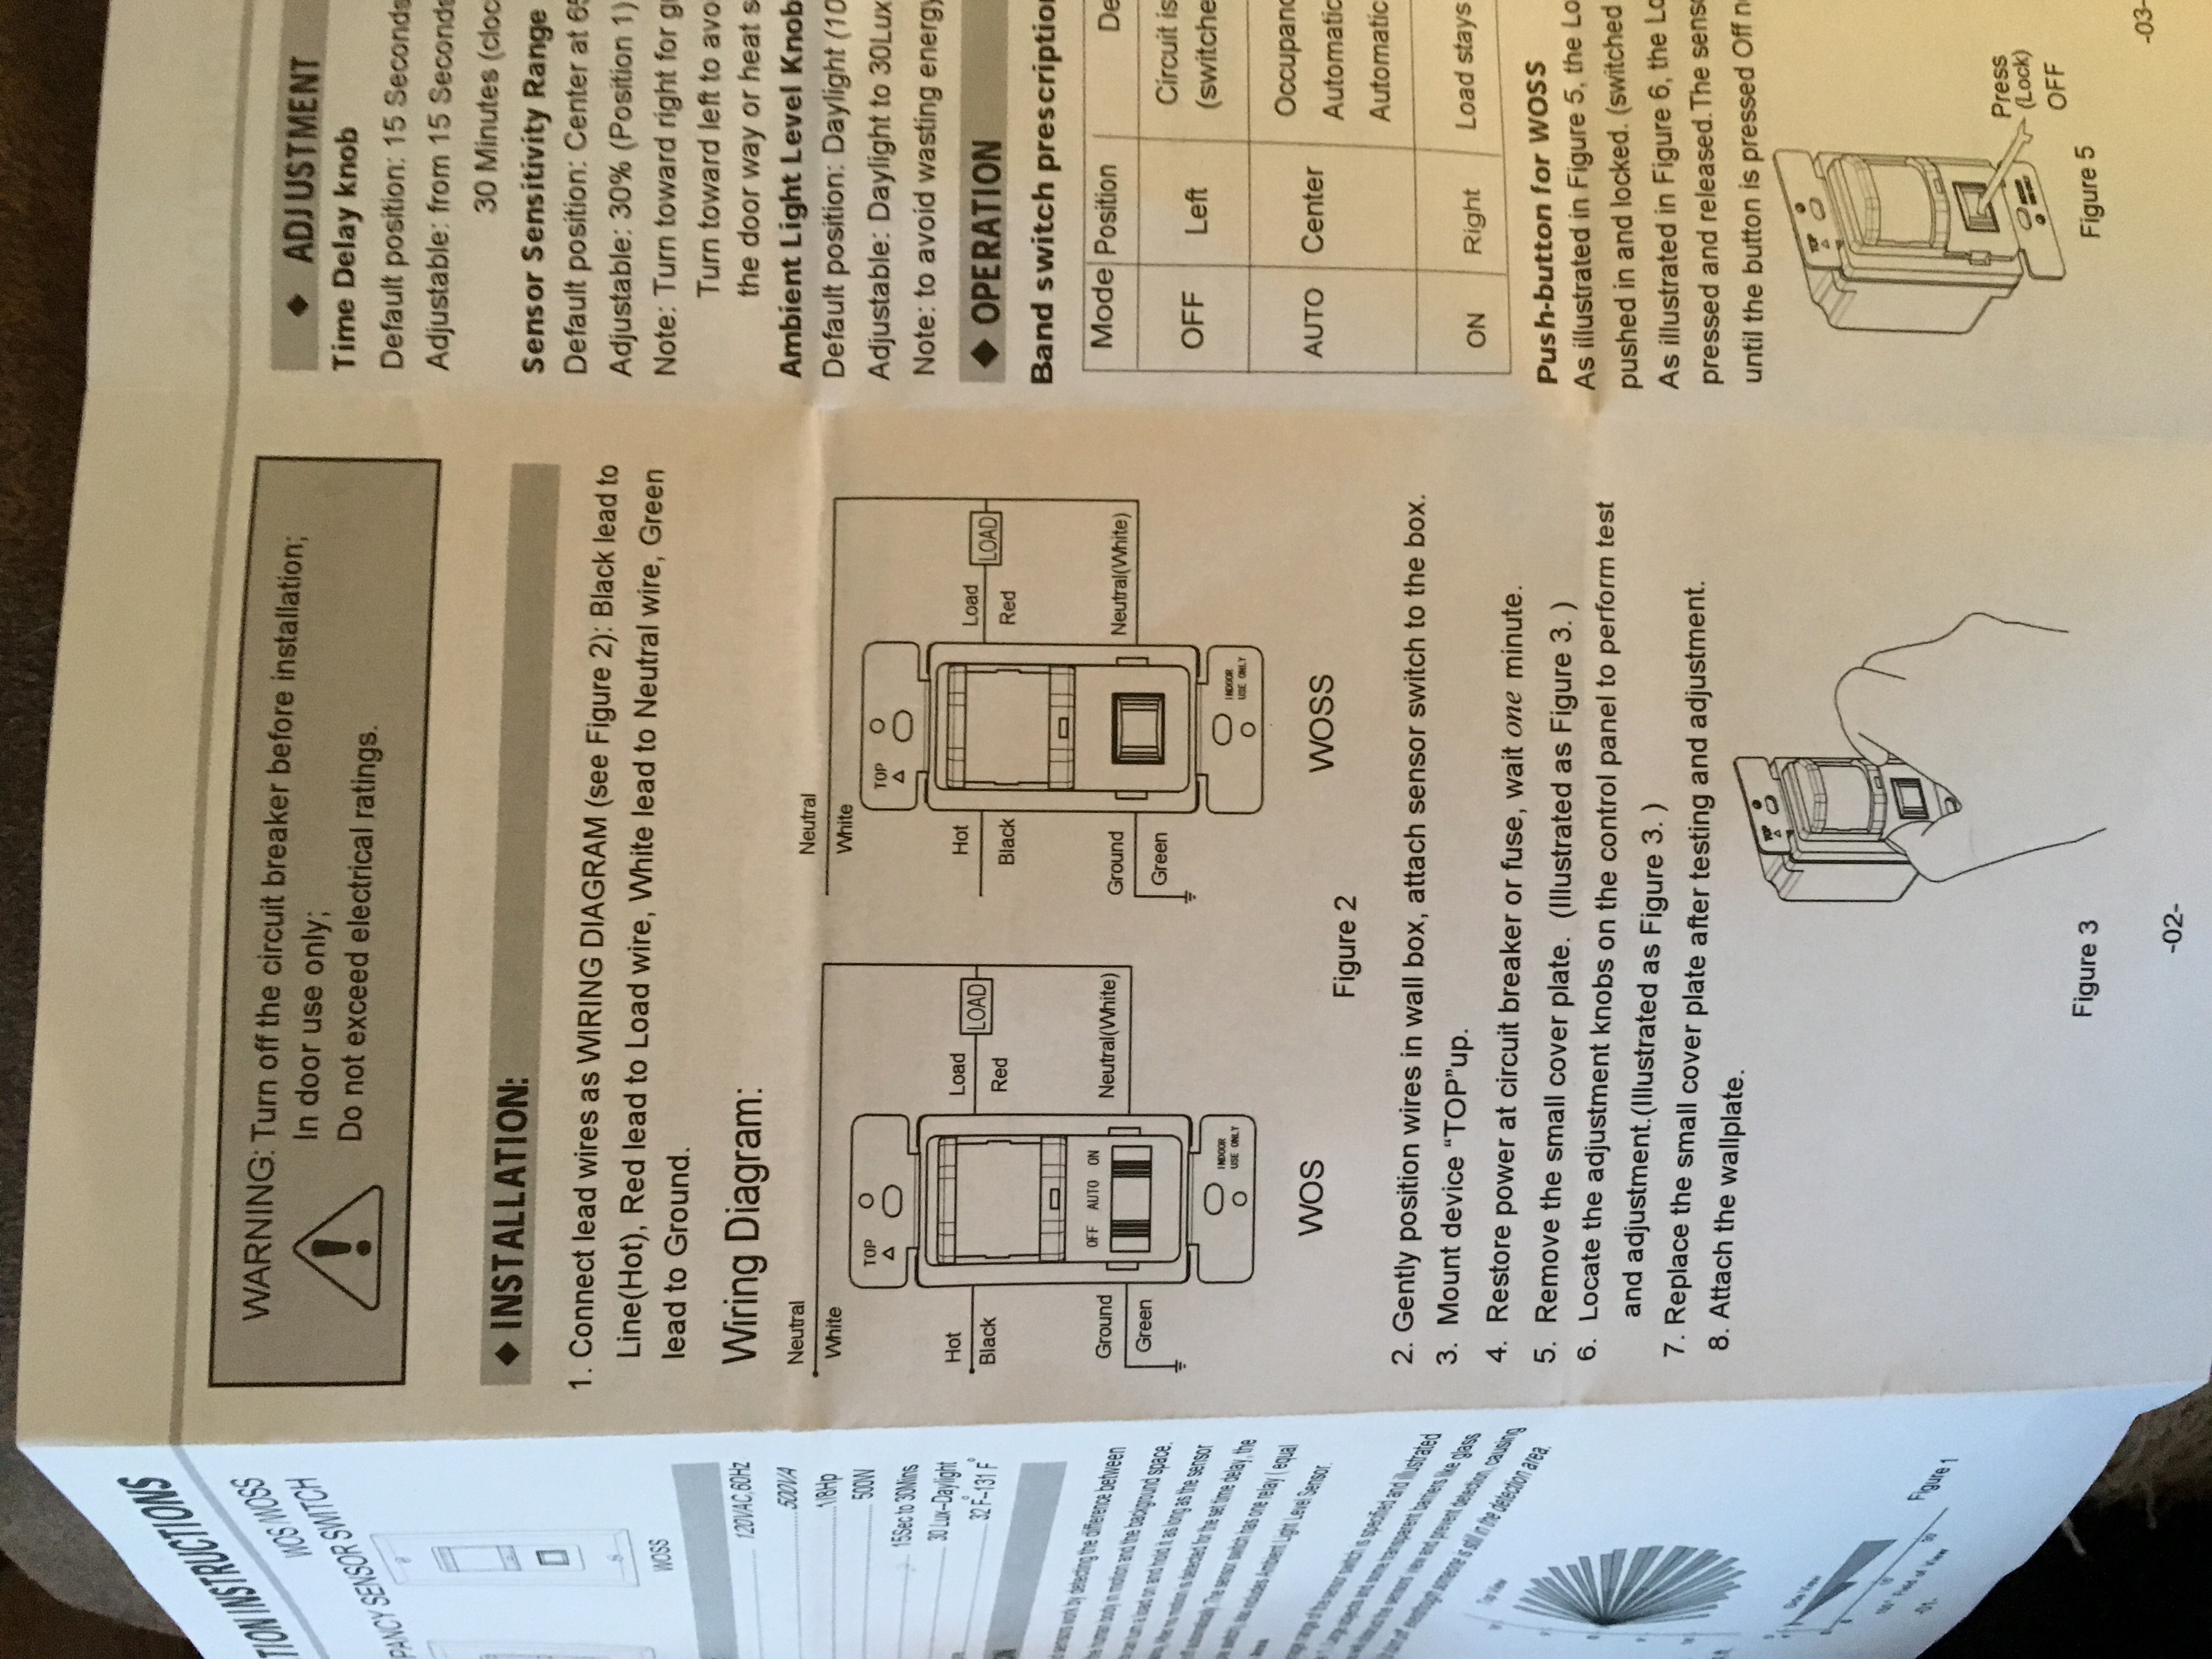 New question in replacing a single pole light switch with a single on single pole lighting diagram, 3-way light switch diagram, single pole switch cover, single pole light diagram, 2 pole switch diagram, single pull switch wiring, s3 single pole switch diagram, single pole switch wire, single pole cord switch, 3 pole switch diagram, single pole switch with common, single pole wall switch diagram, single pole double throw, single pole power diagram, single pull switch devices, single pole toggle switch, single light switch wiring, single pole switch circuit, single pole motor diagram, single pole vs double pole,